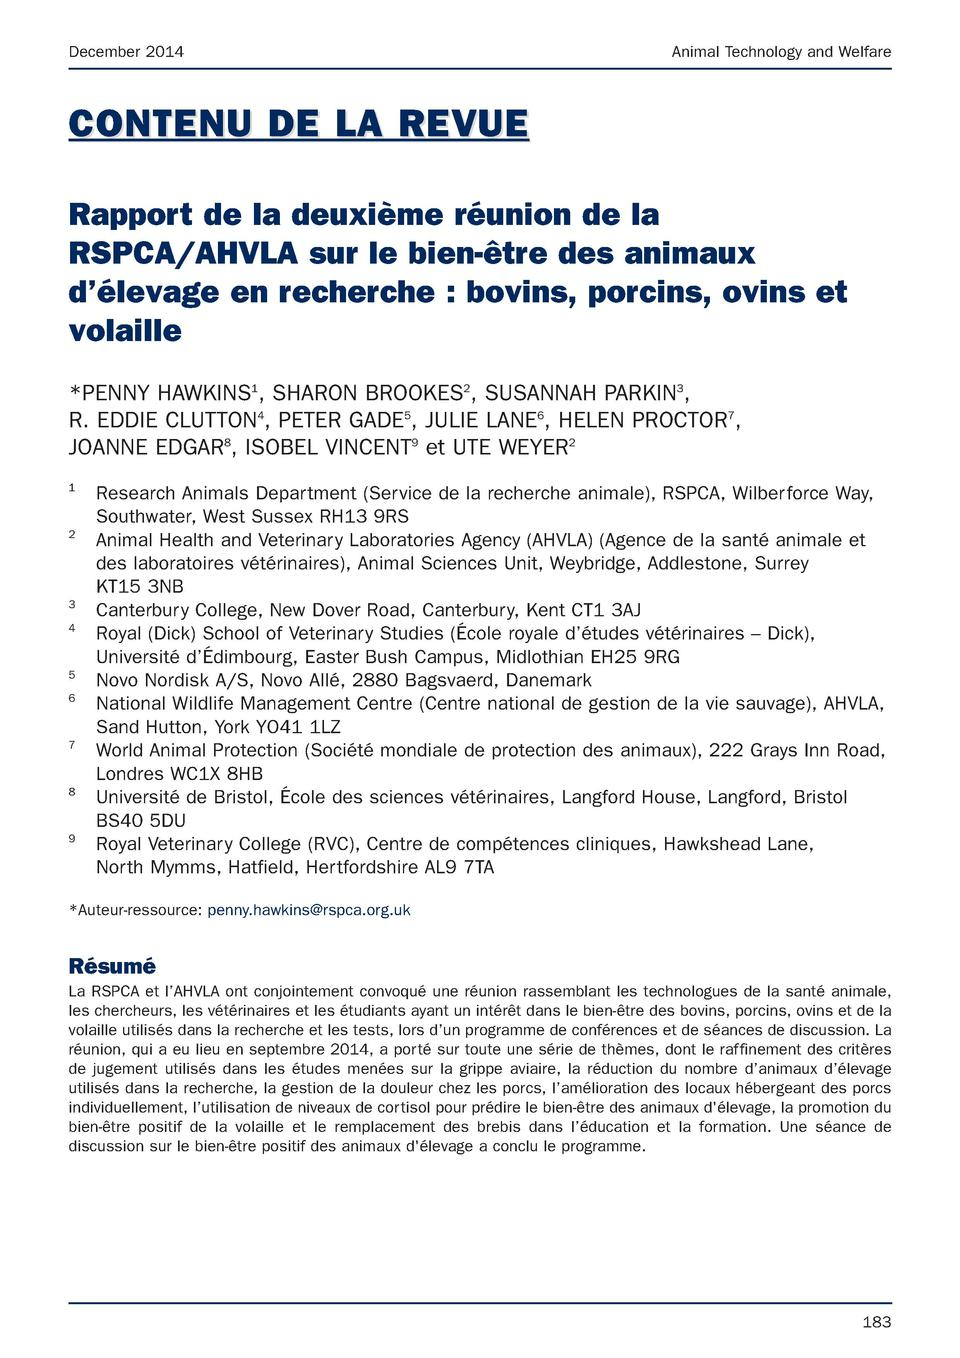 December 2014  Animal Technology and Welfare  CONTENU DE LA REVUE Rapport de la deuxi  me r  union de la RSPCA AHVLA sur l...